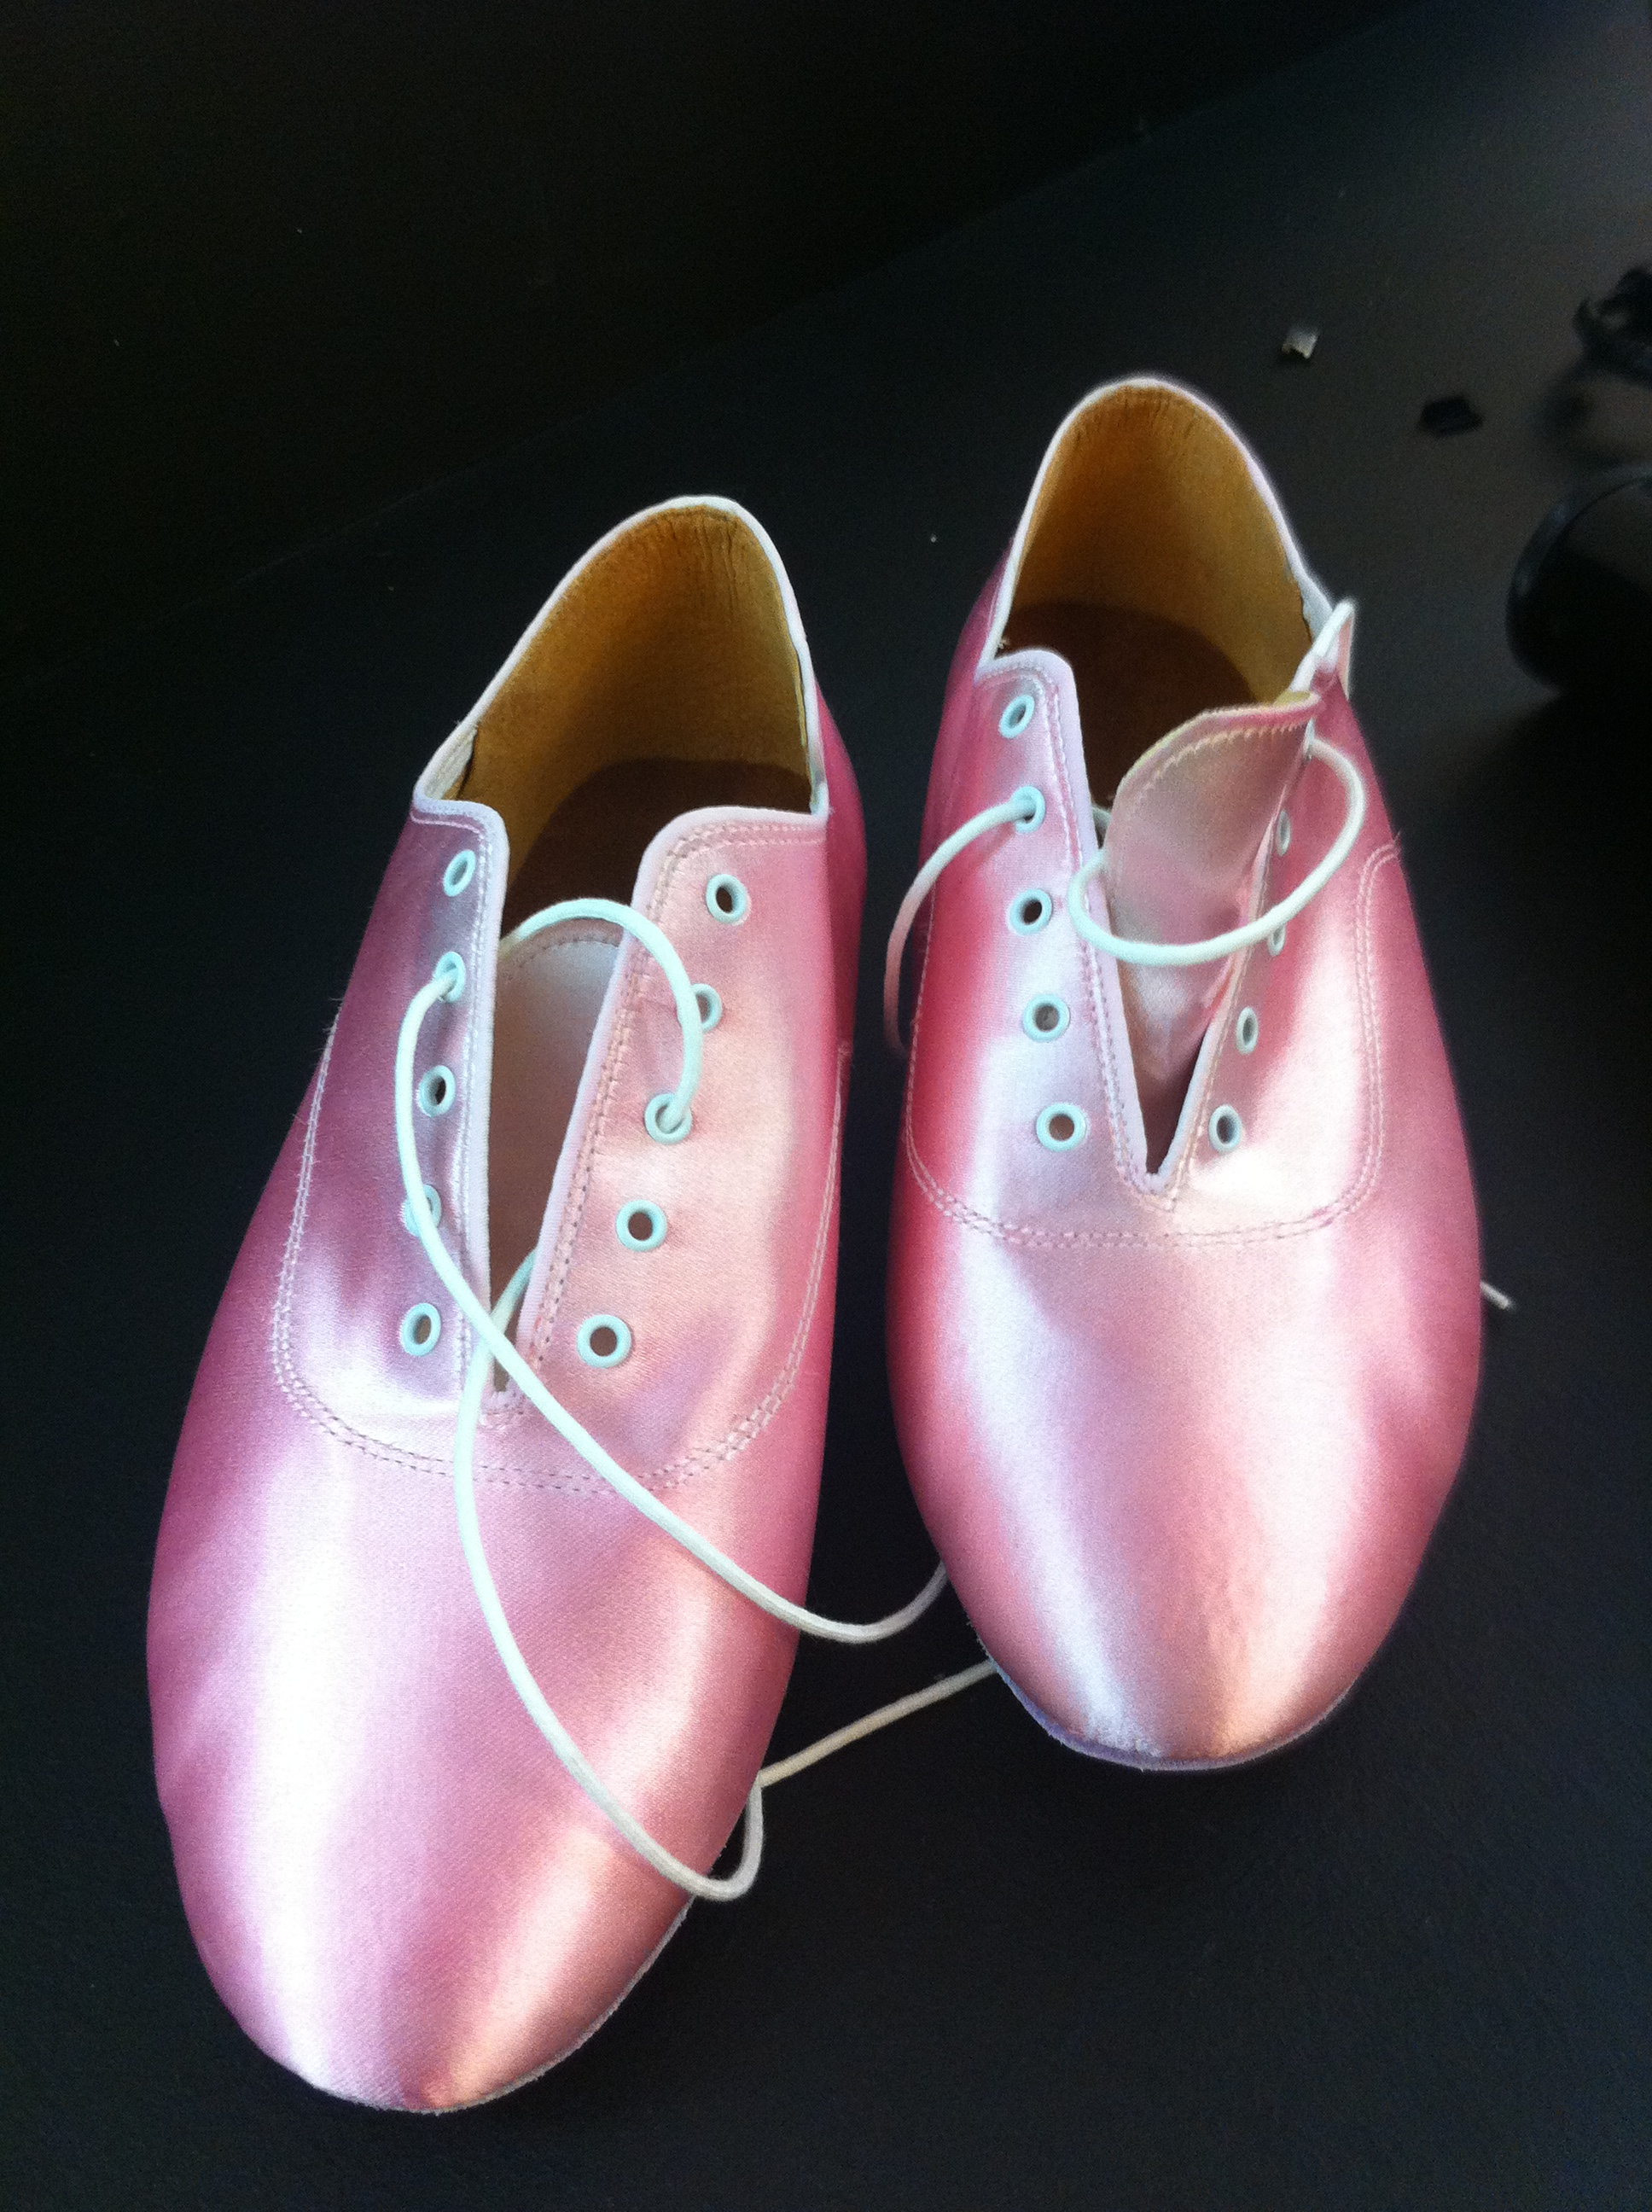 Pink shoes backstage at Strictly